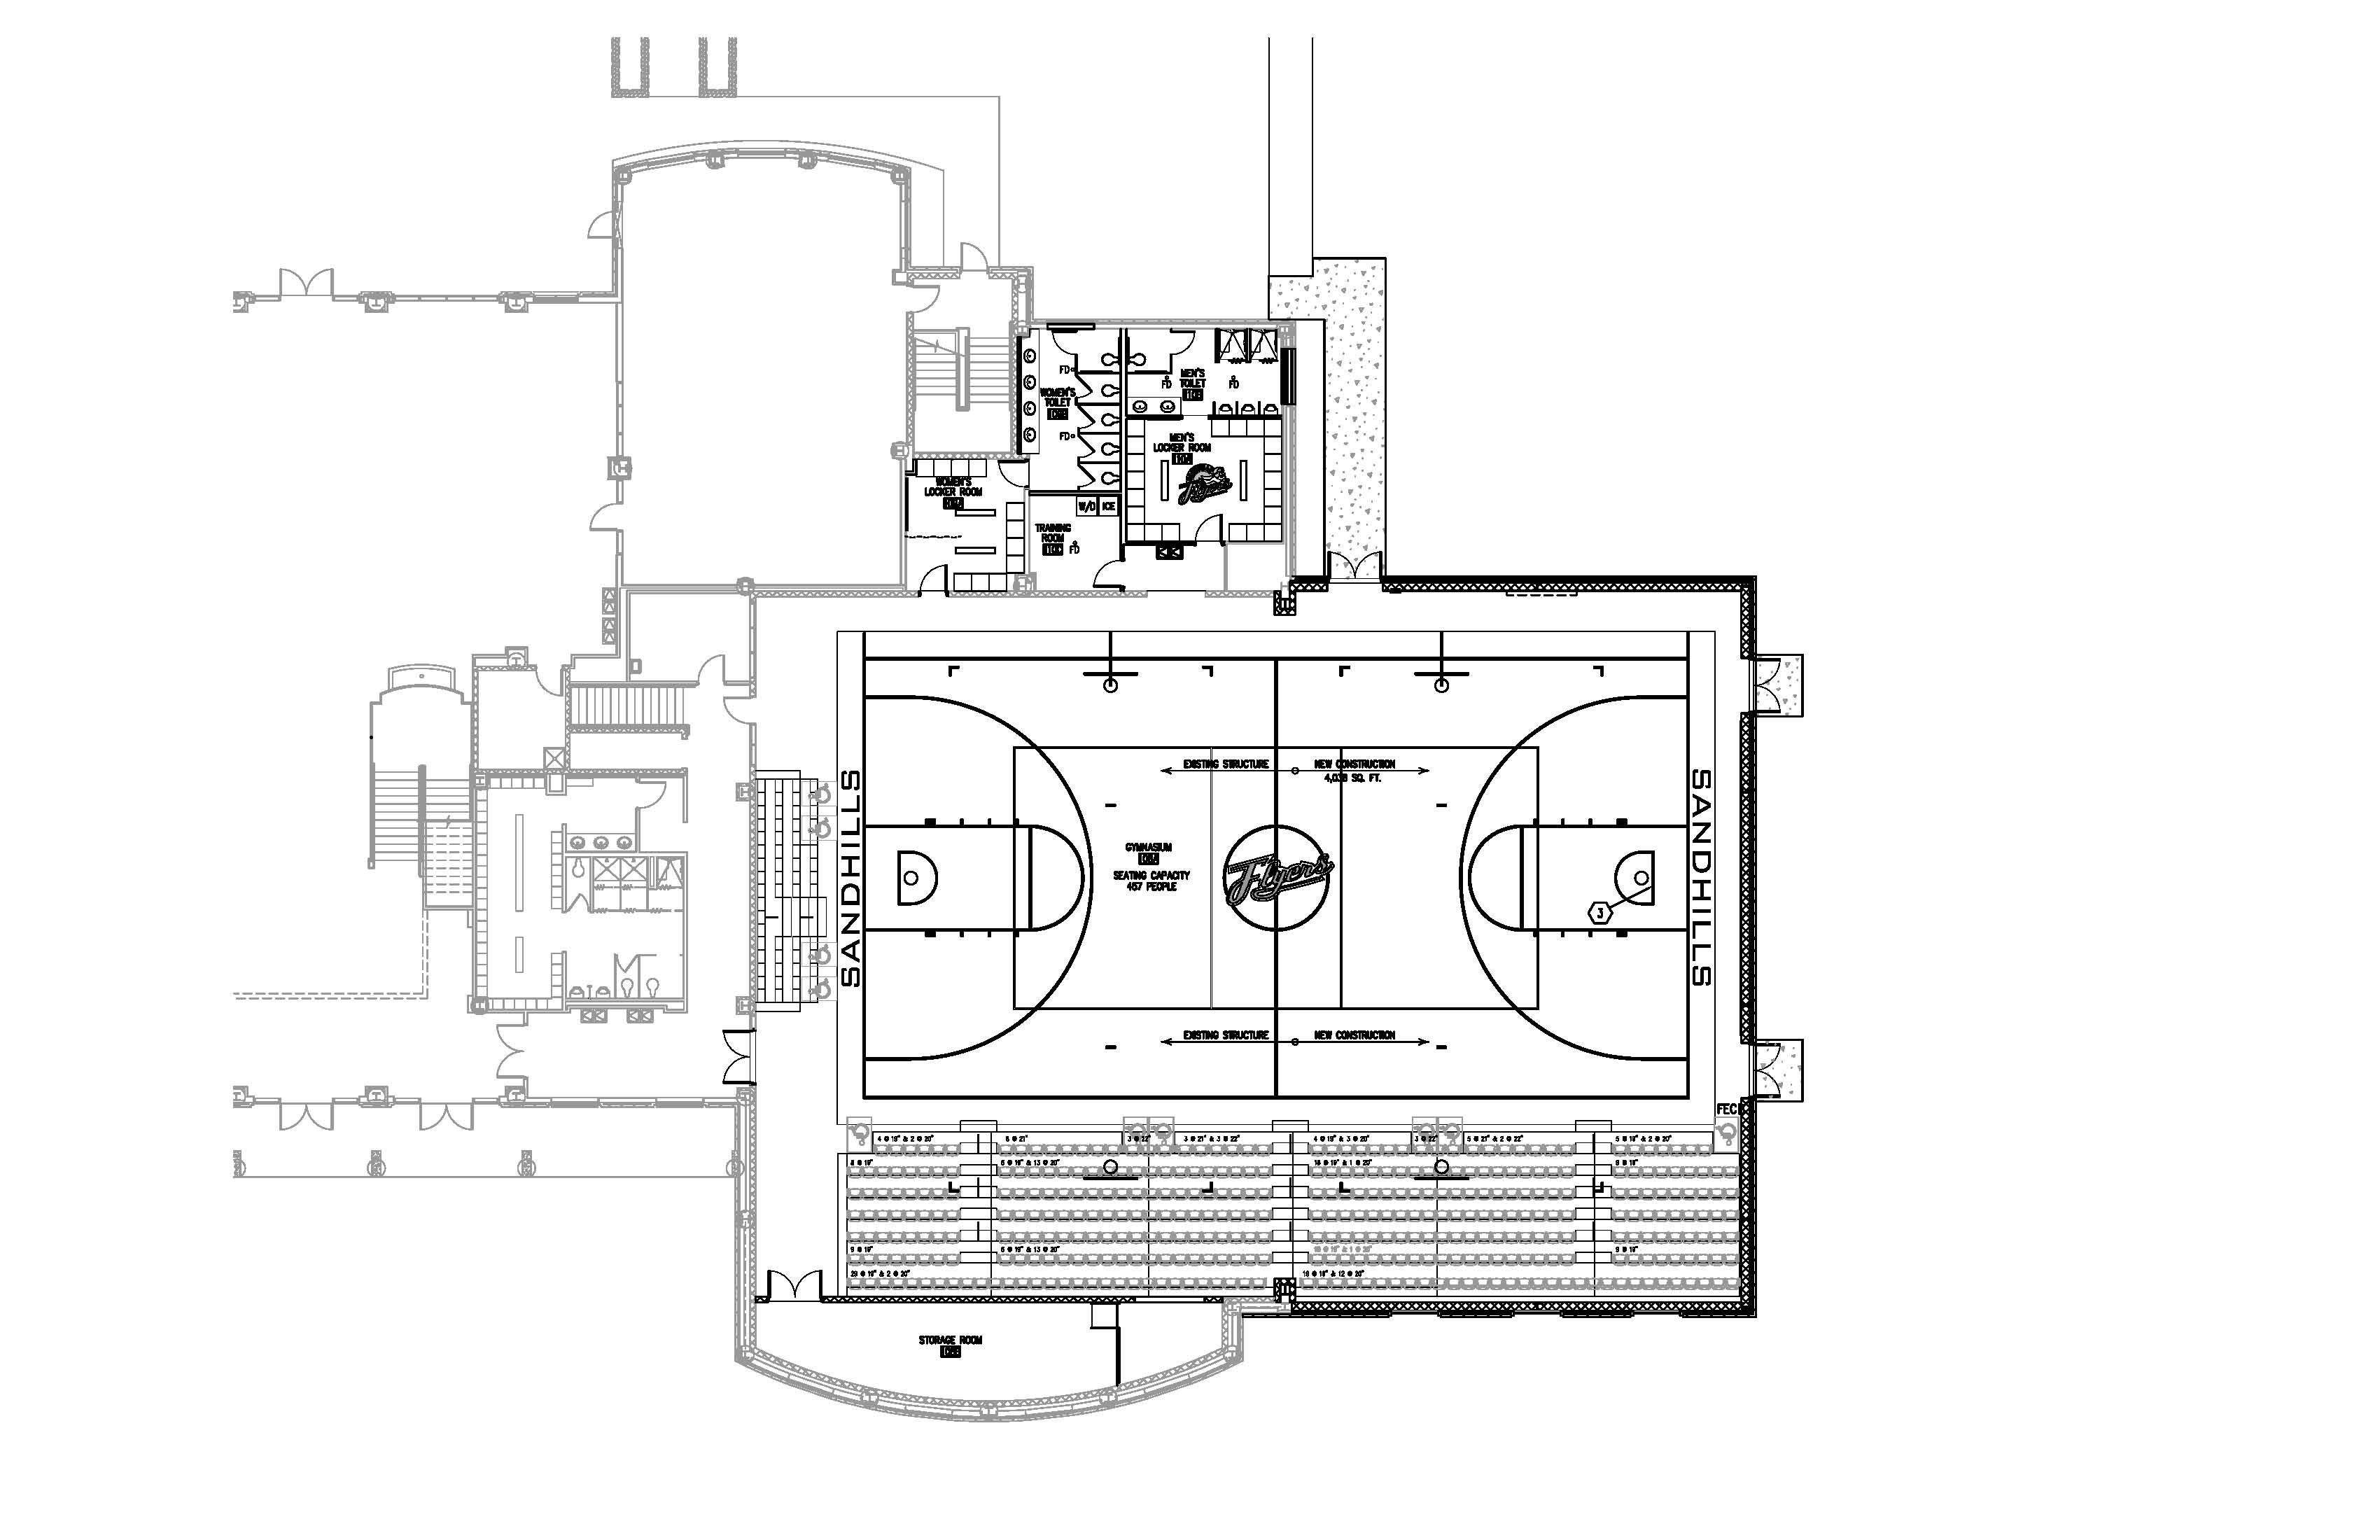 Basketball Gym Floor Plans http://www.wrightarchitecture.com/scc_dempsey_gymnasium_expansion.htm